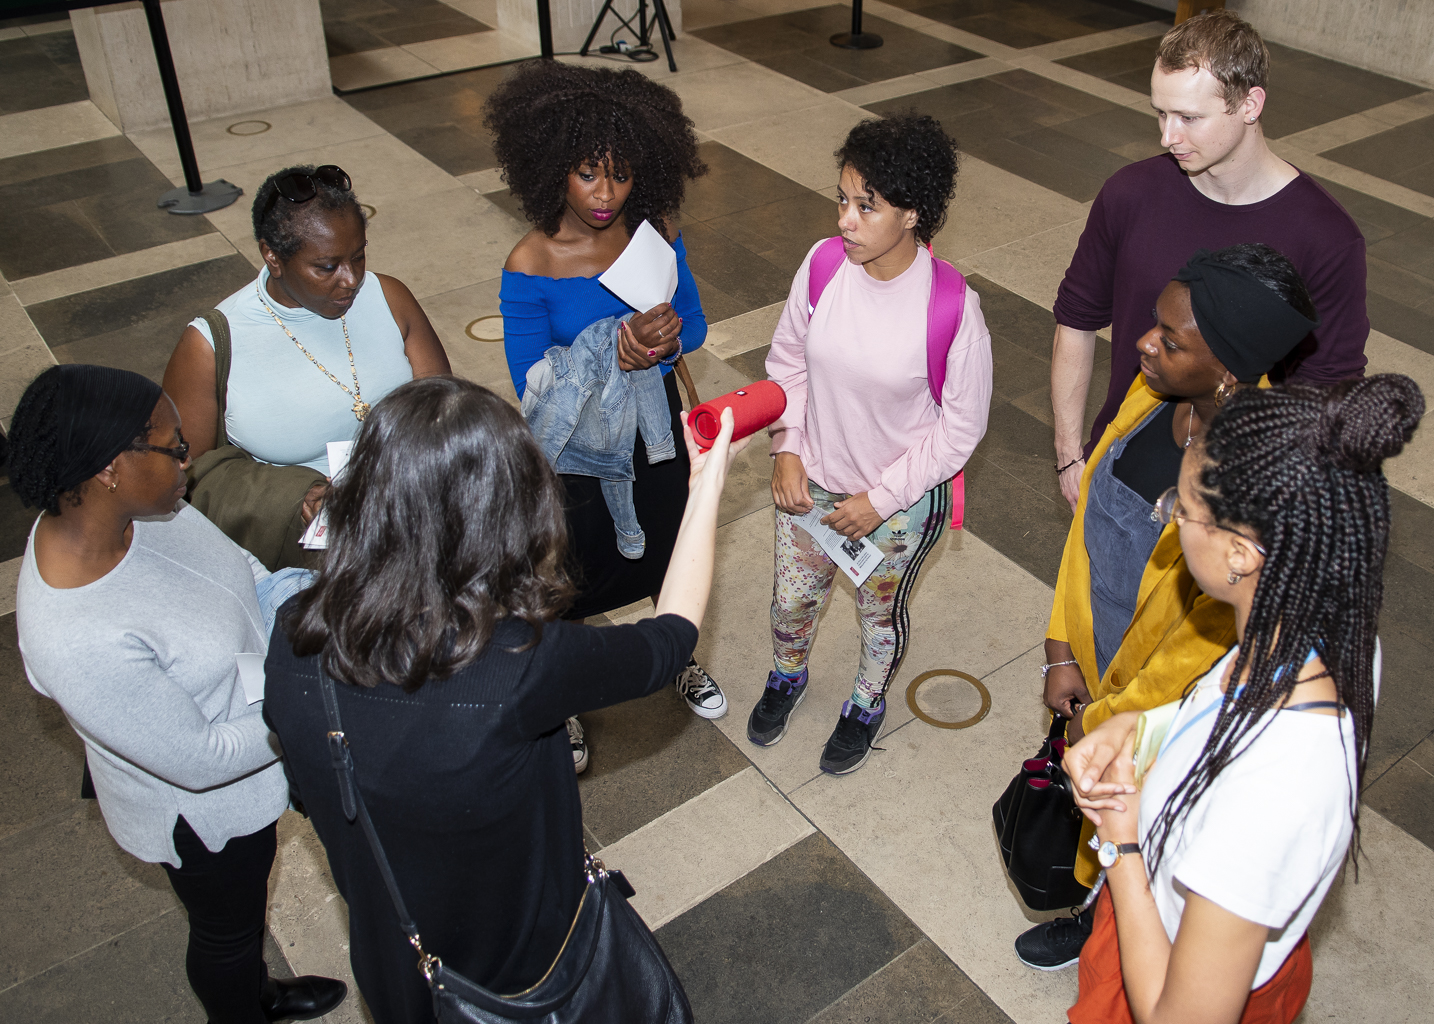 A tour group stand in a circle in the British Library Entrance Hall at St Pancras